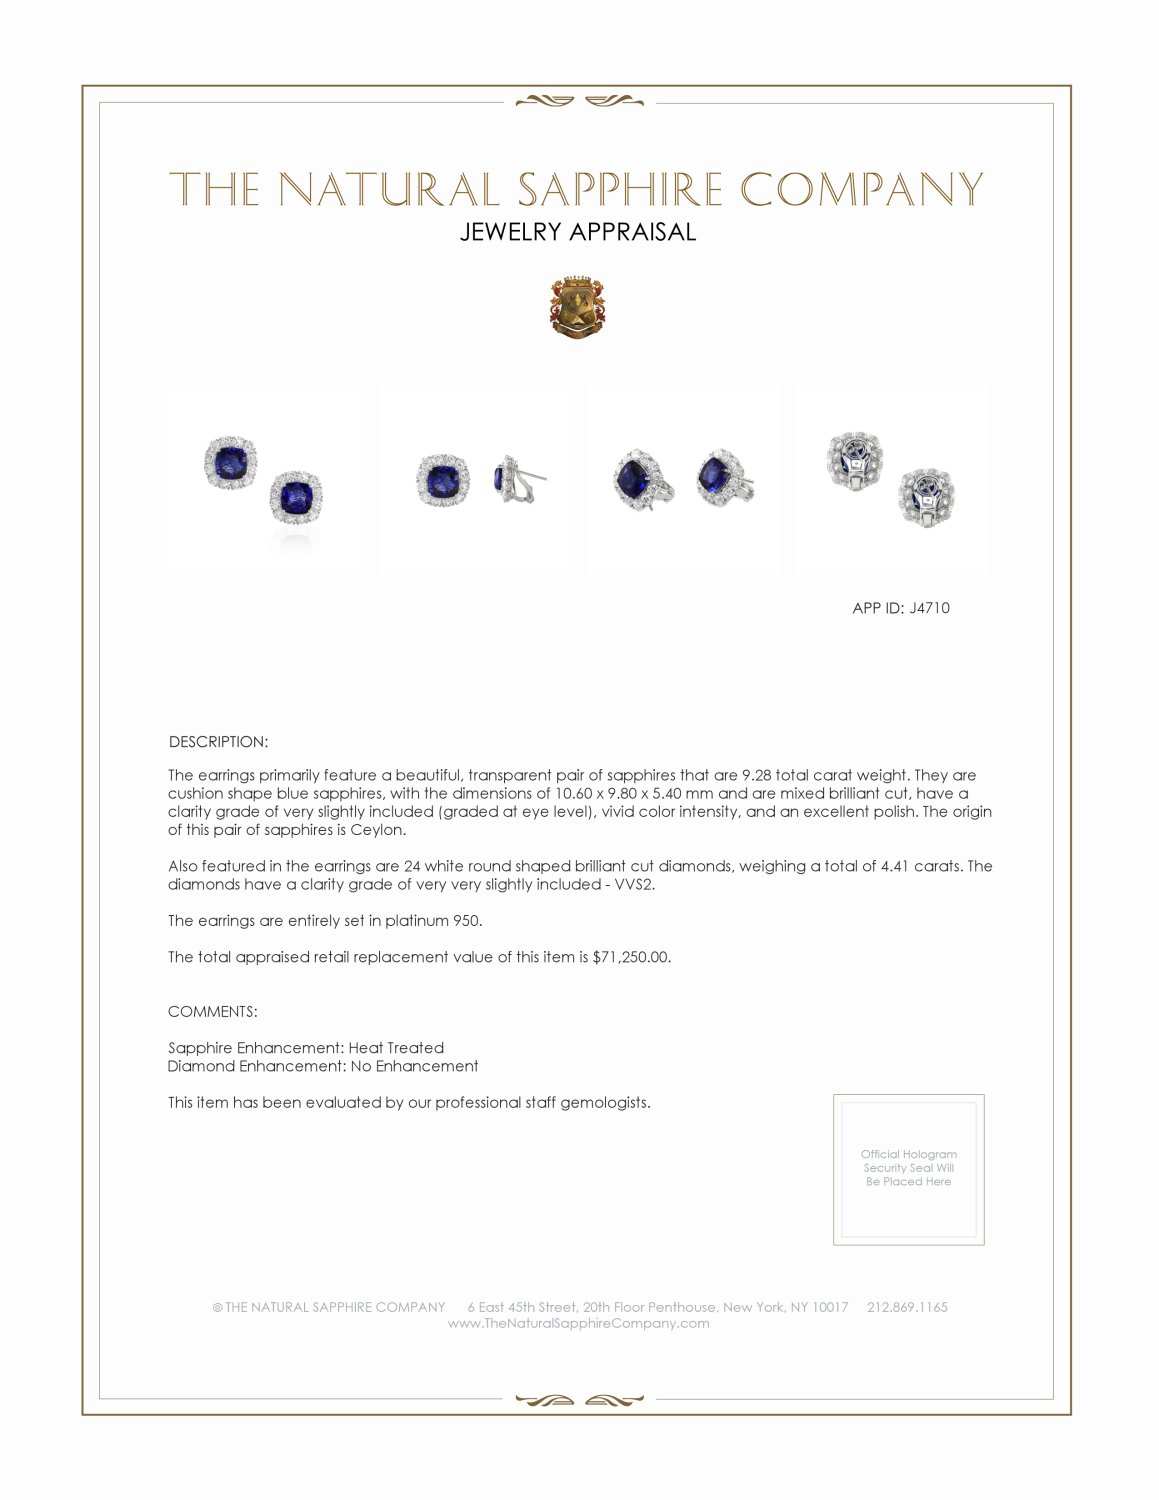 9.28ct Blue Sapphire Earring Certification 2